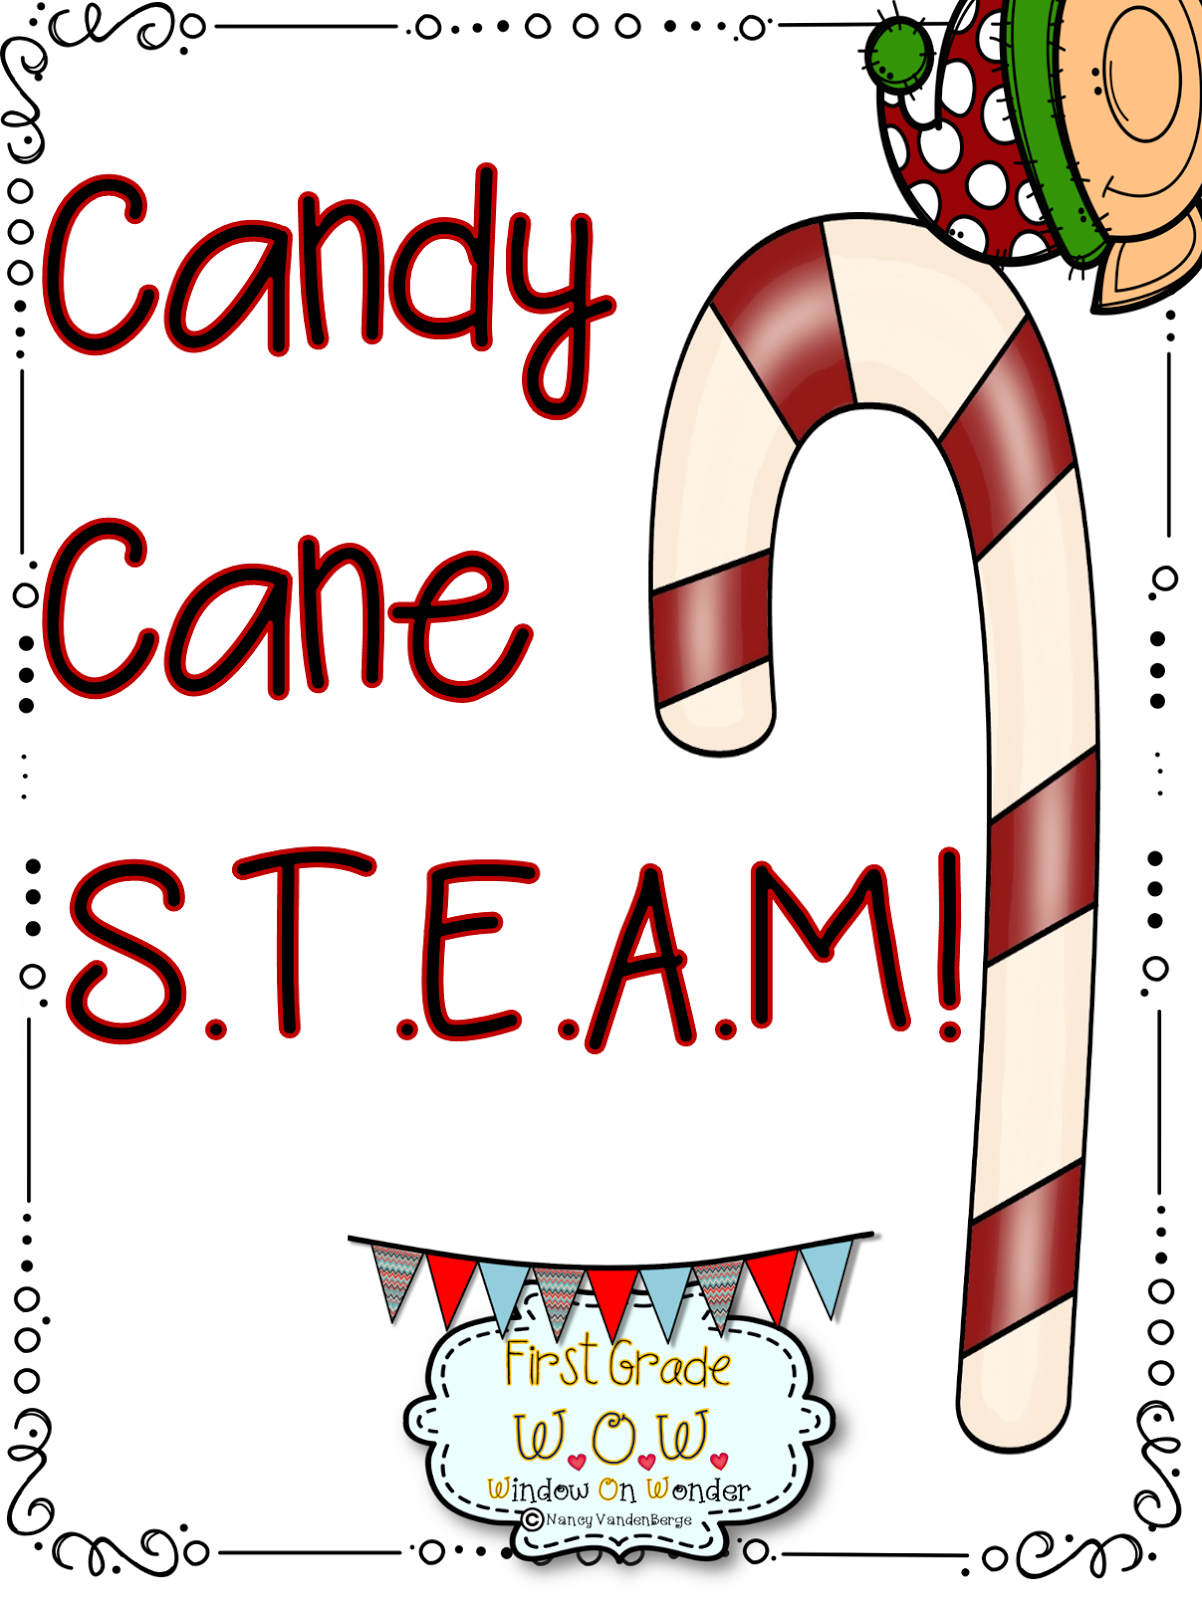 First Grade Wow Candy Cane Steam